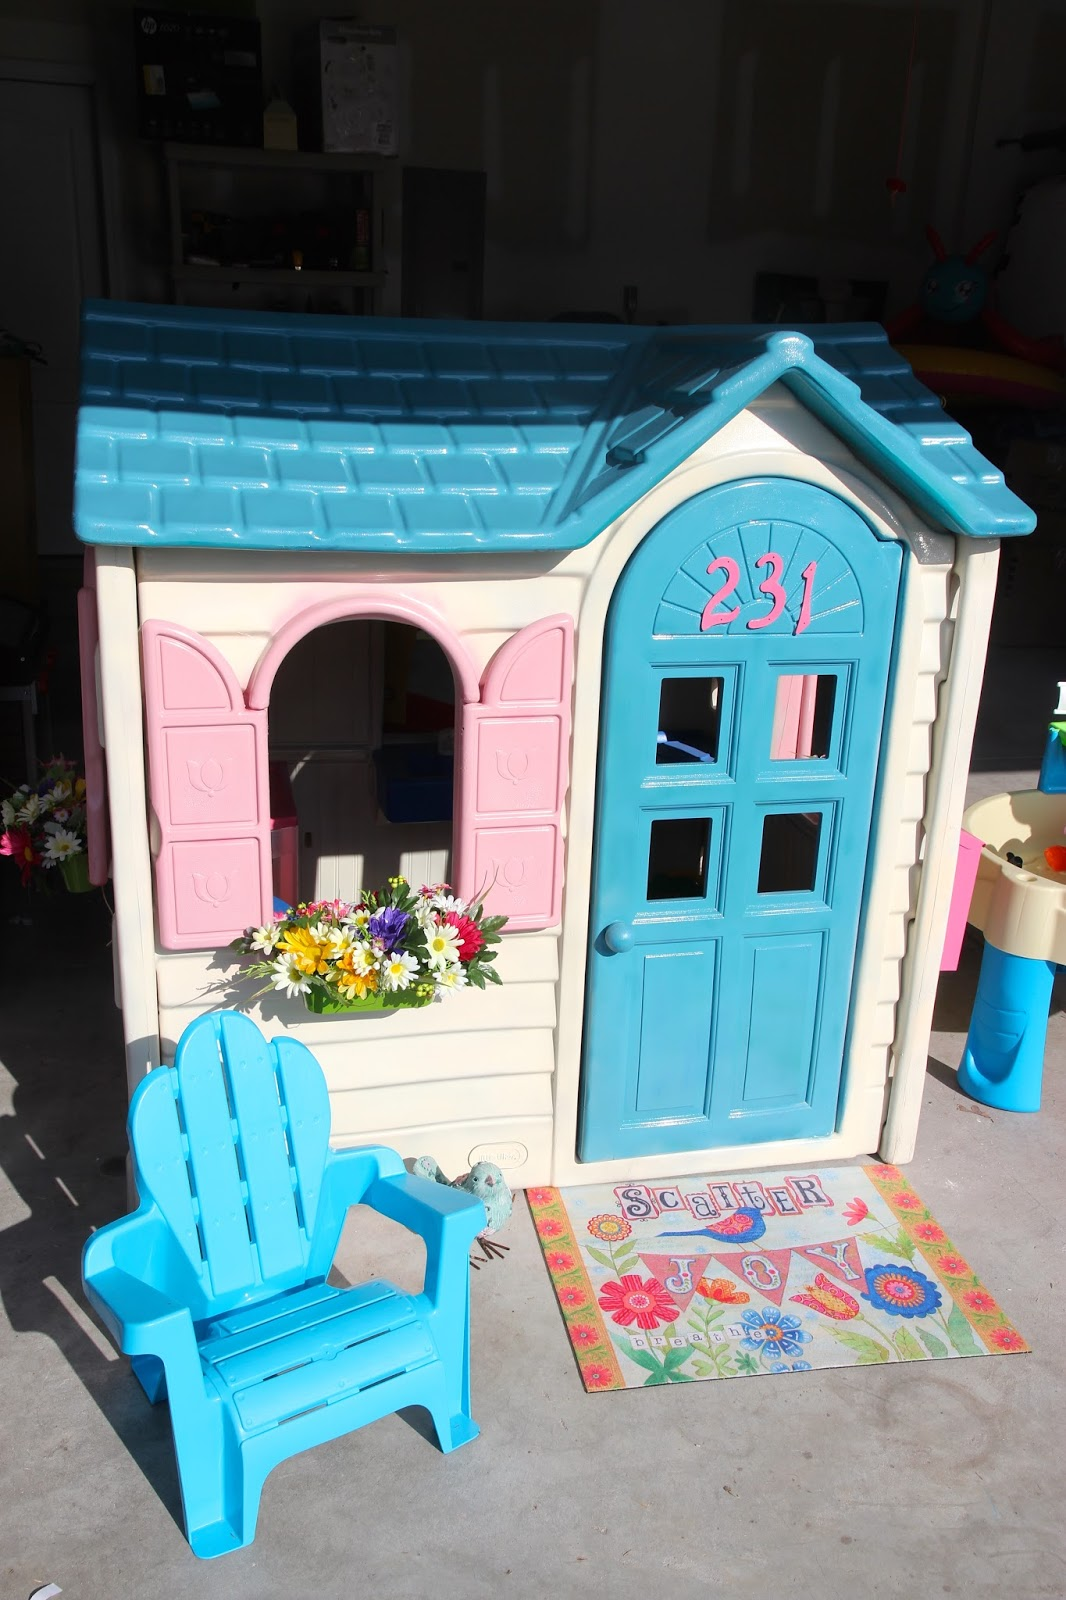 Cosy Little Tikes Home Garden Playhouse. It was a well loved  outdoor playhouse one of my neighbors sold me for 35 in good structural condition and just showed signs being enjoyed 2 Pugs Little Lady Tikes Playhouse Makeover